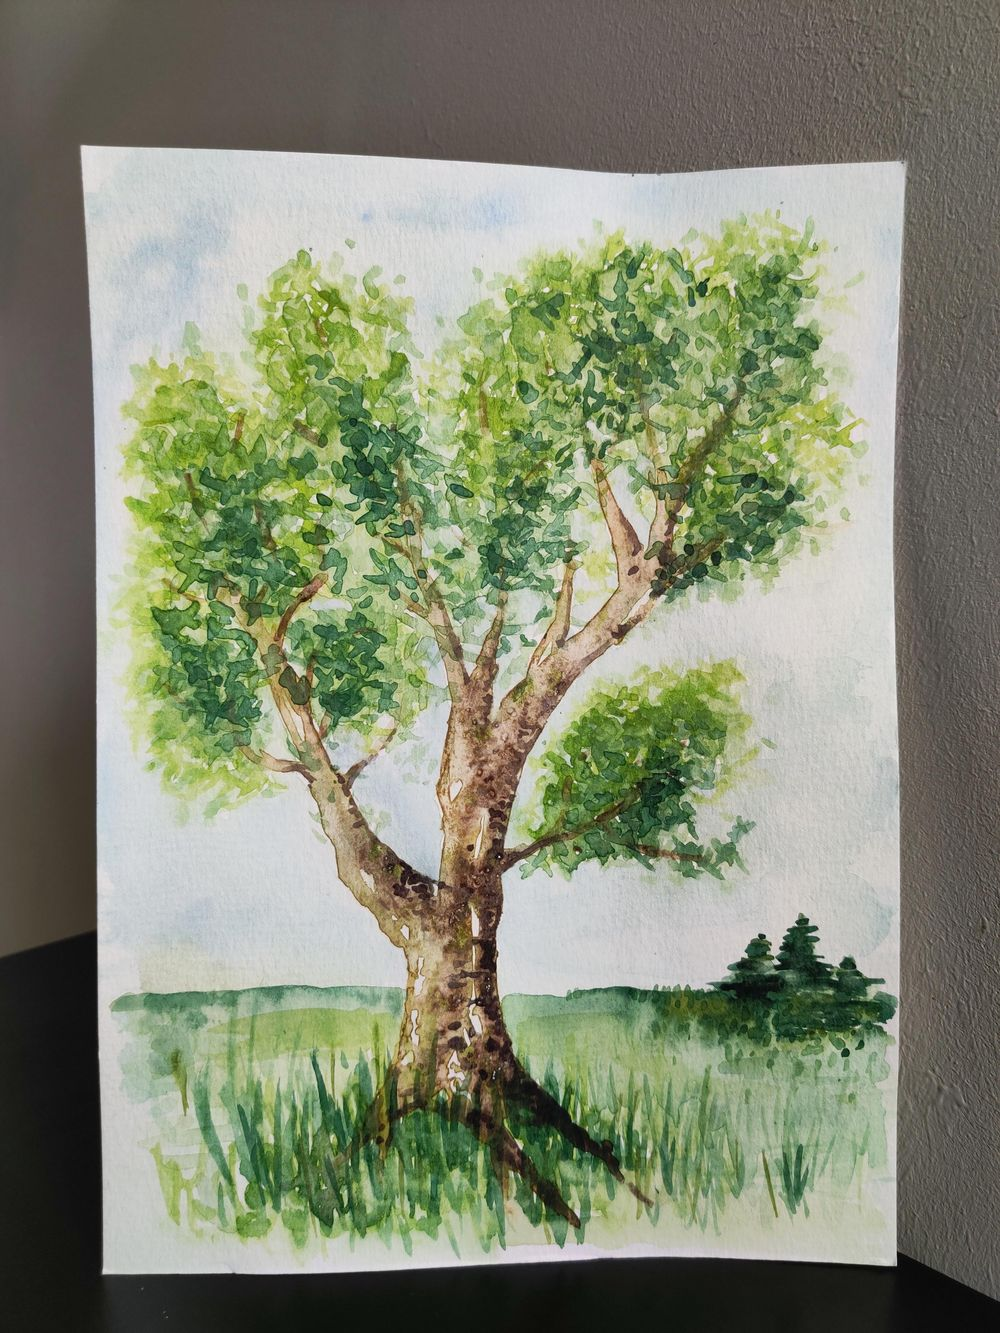 Practice tree : step by step - image 5 - student project